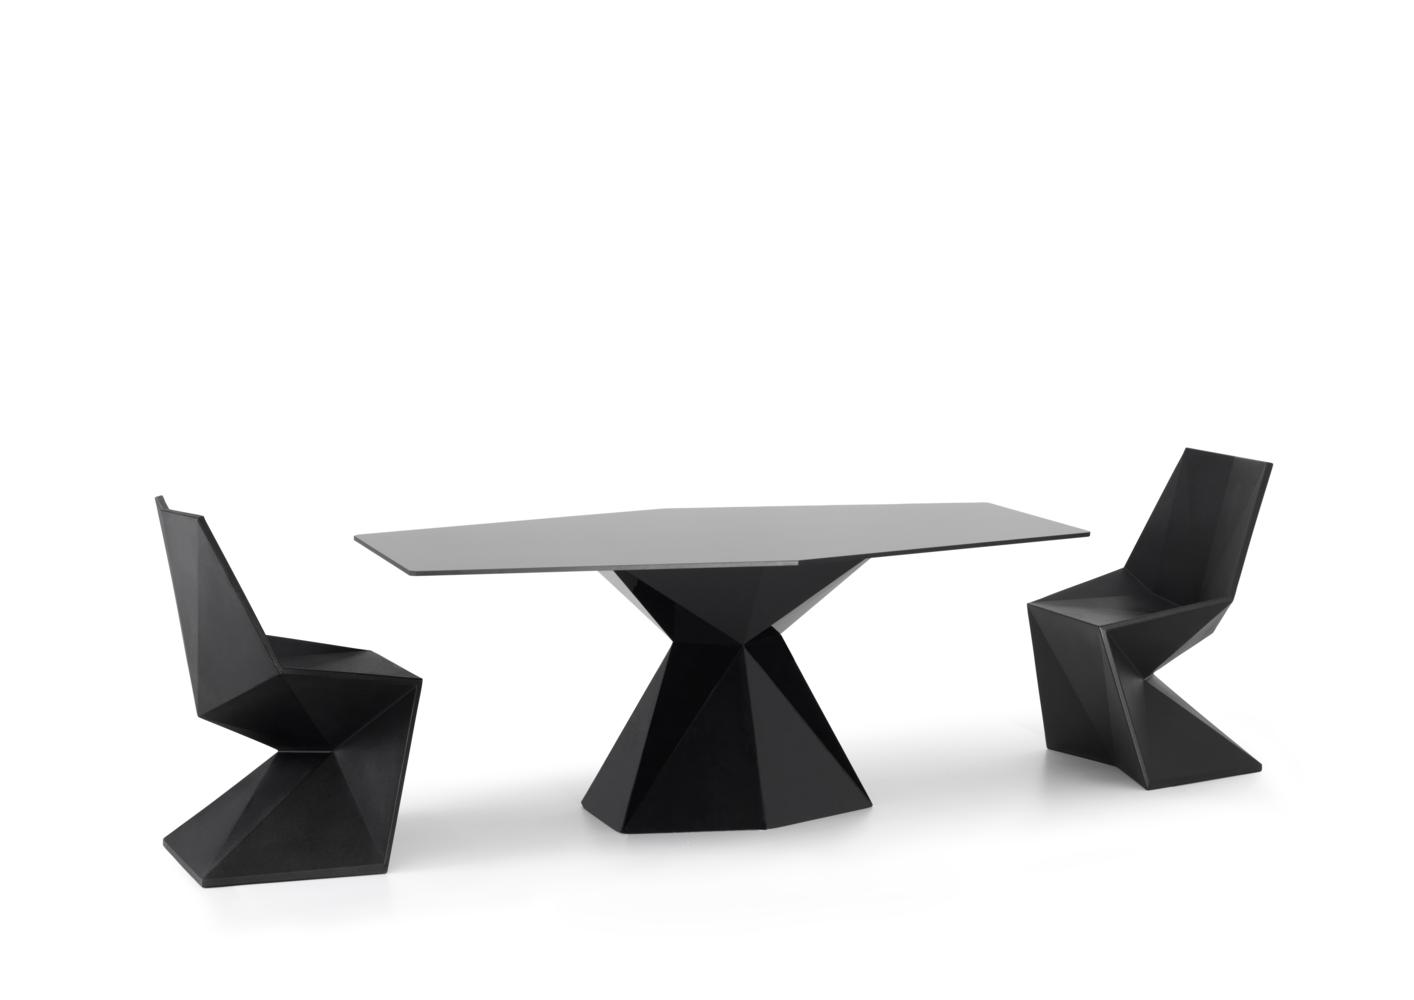 acheter votre table de jardin contemporaine chez simeuble. Black Bedroom Furniture Sets. Home Design Ideas